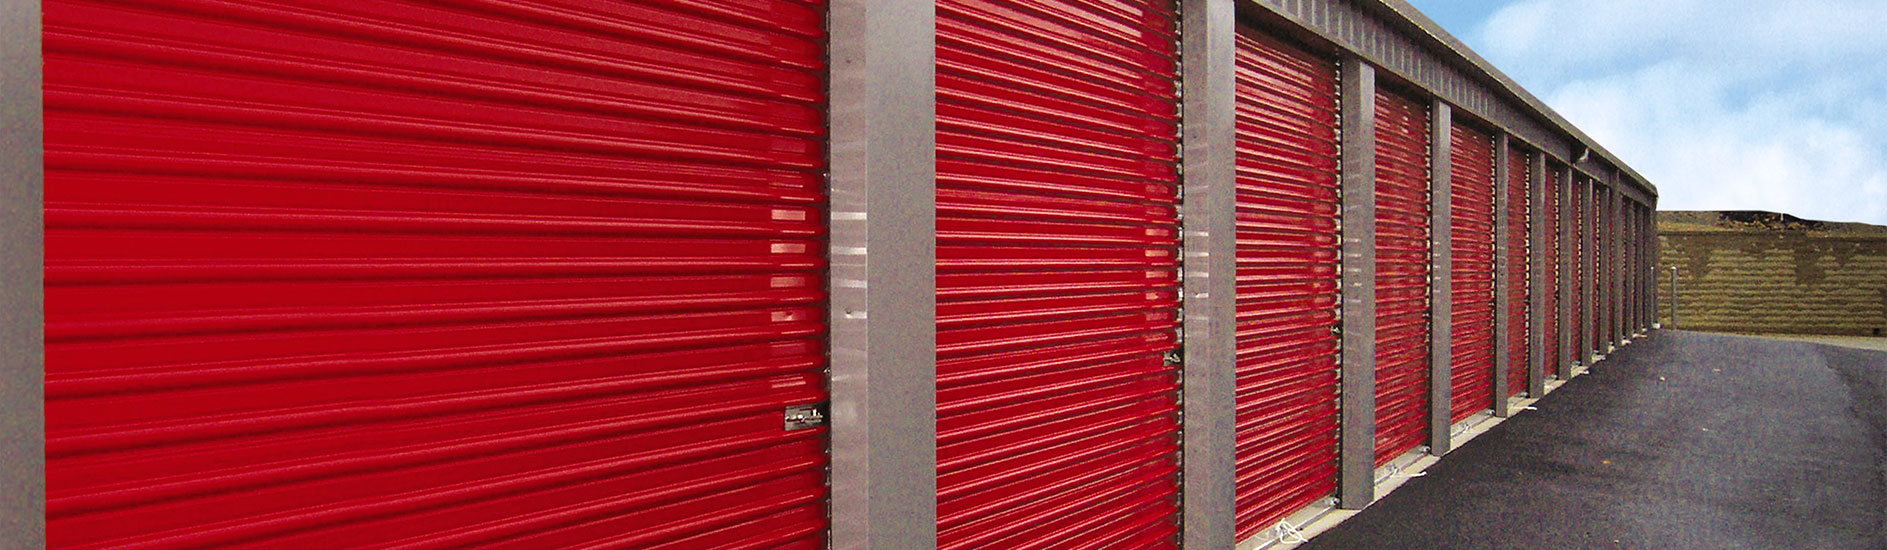 Roll Up Sheet Doors For Storage Facilities And Self Storage